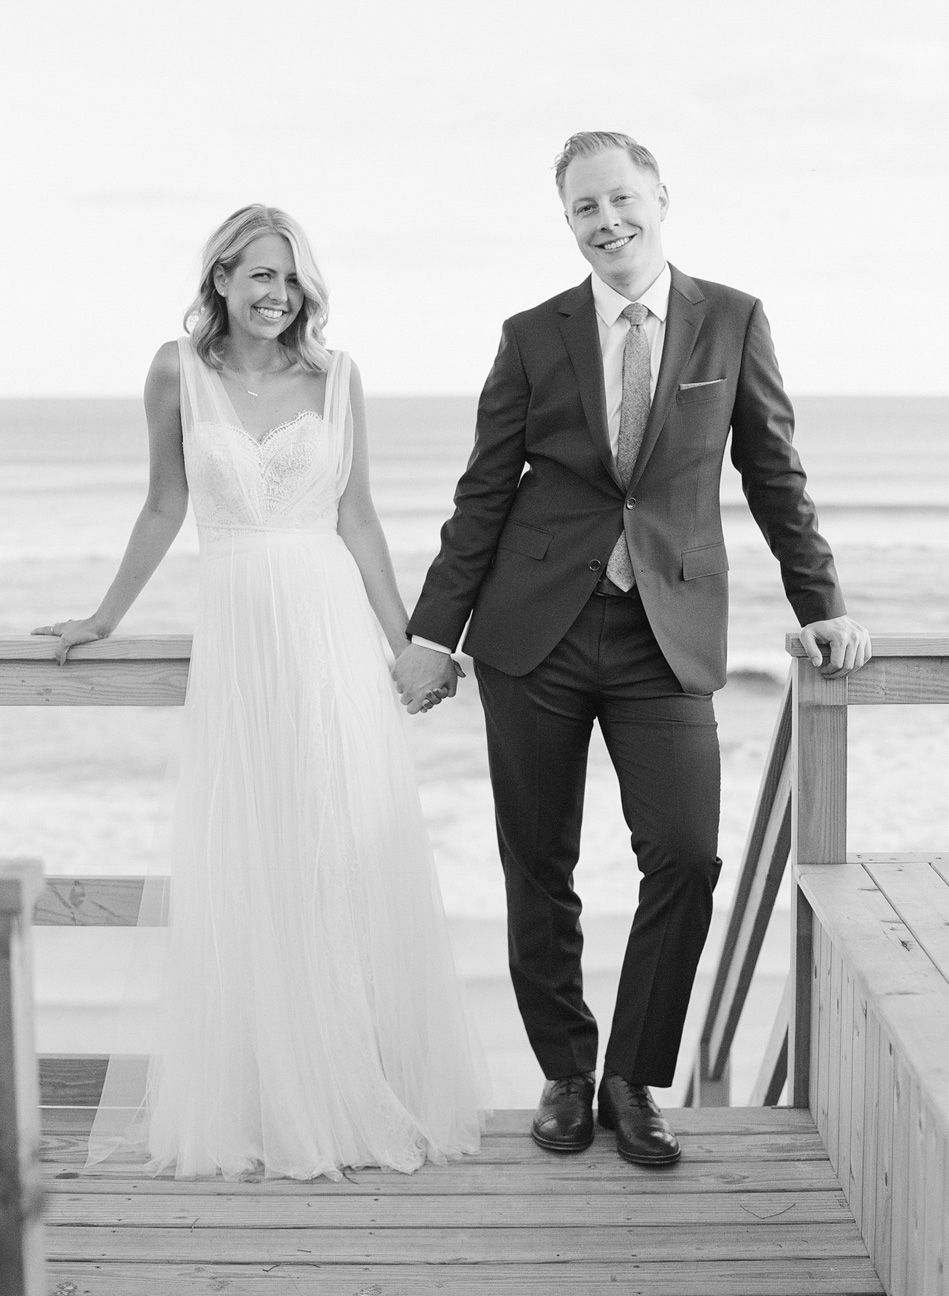 Casual Fall Wedding in Montauk, NY